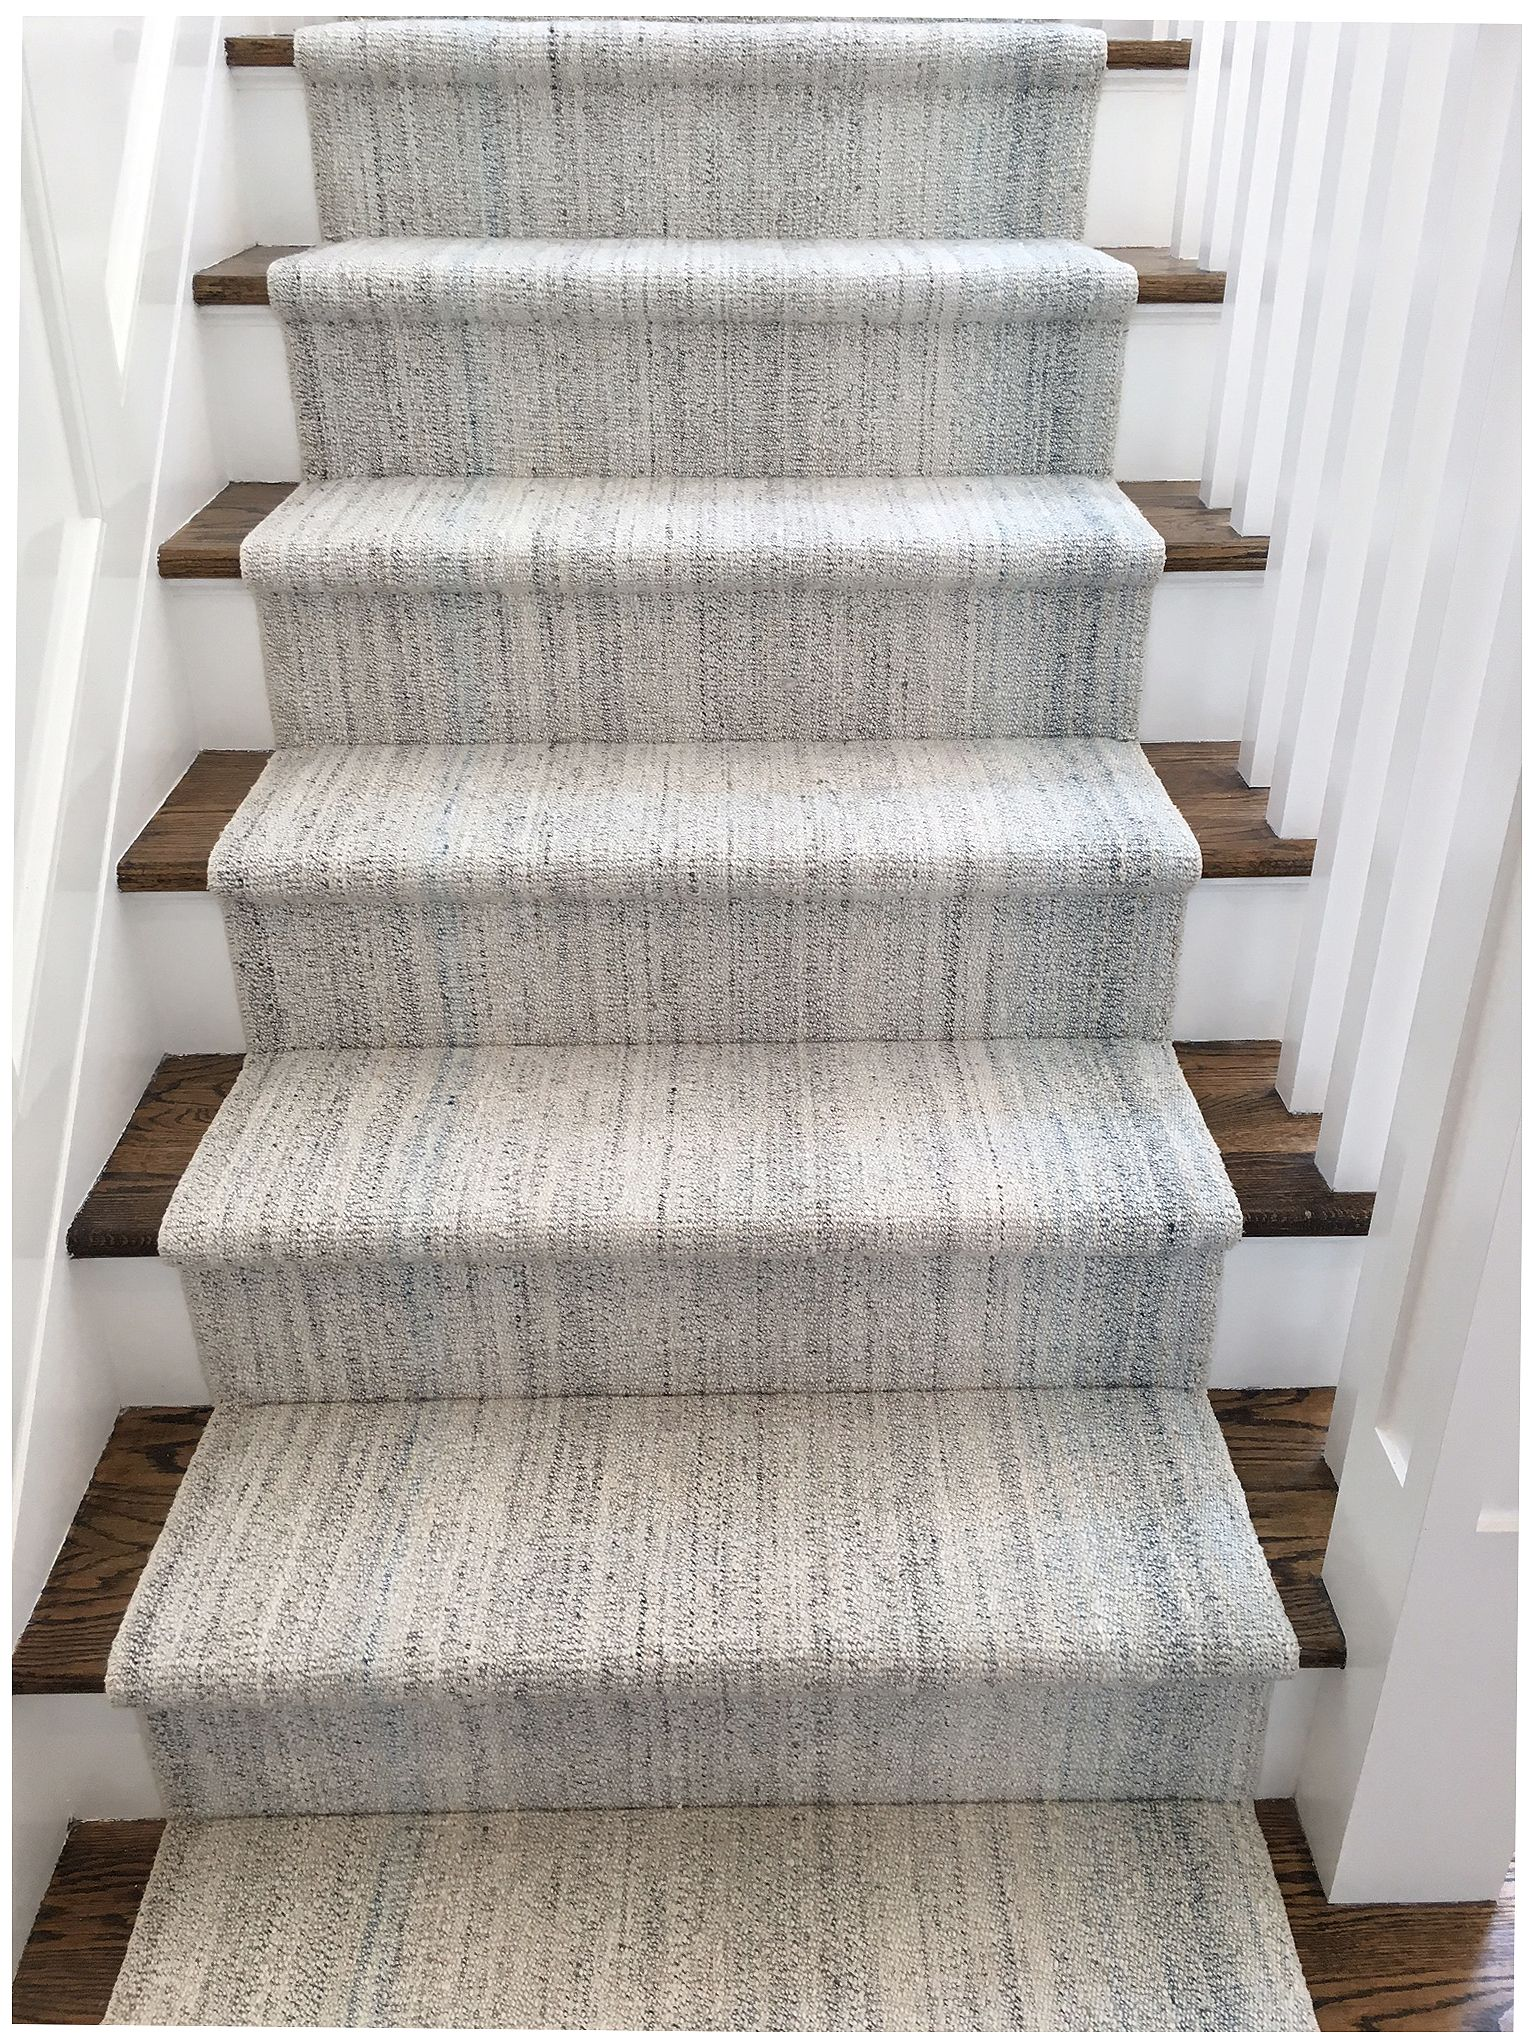 Best Custom Pelas Flat Weave Runner Cotton Wool Stair Runner 400 x 300